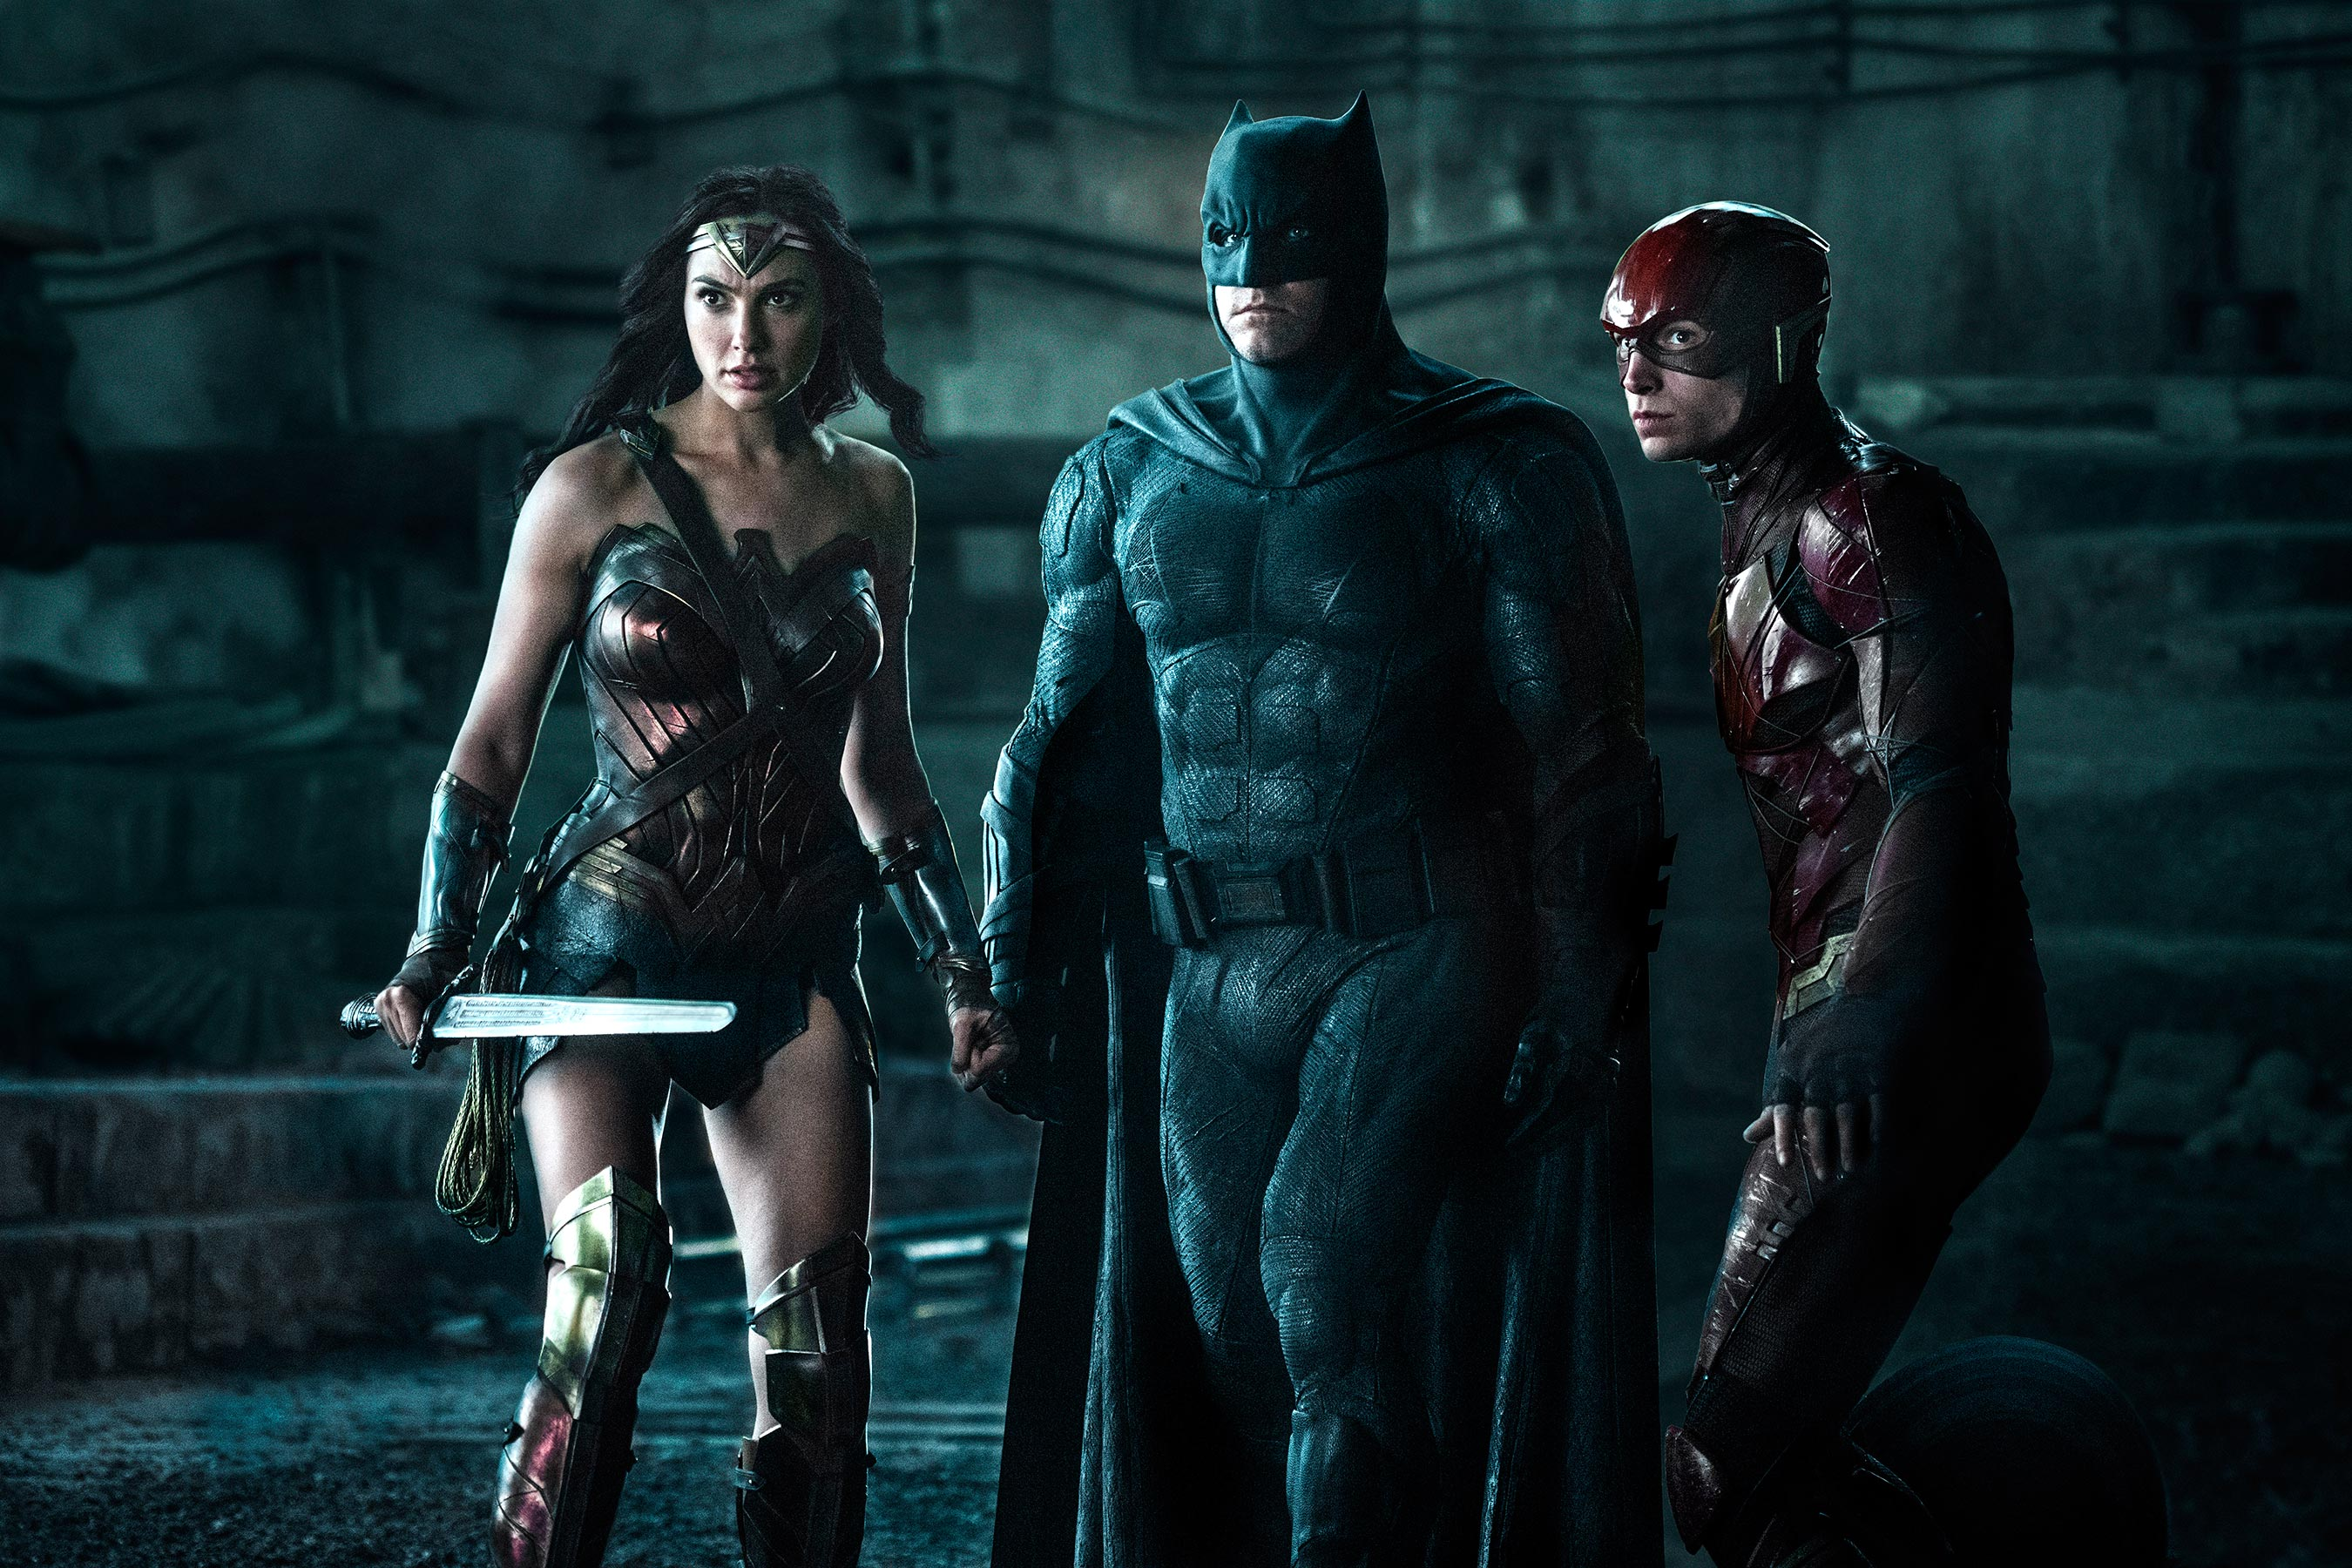 Justice League box office is DC Extended Universe's lowest